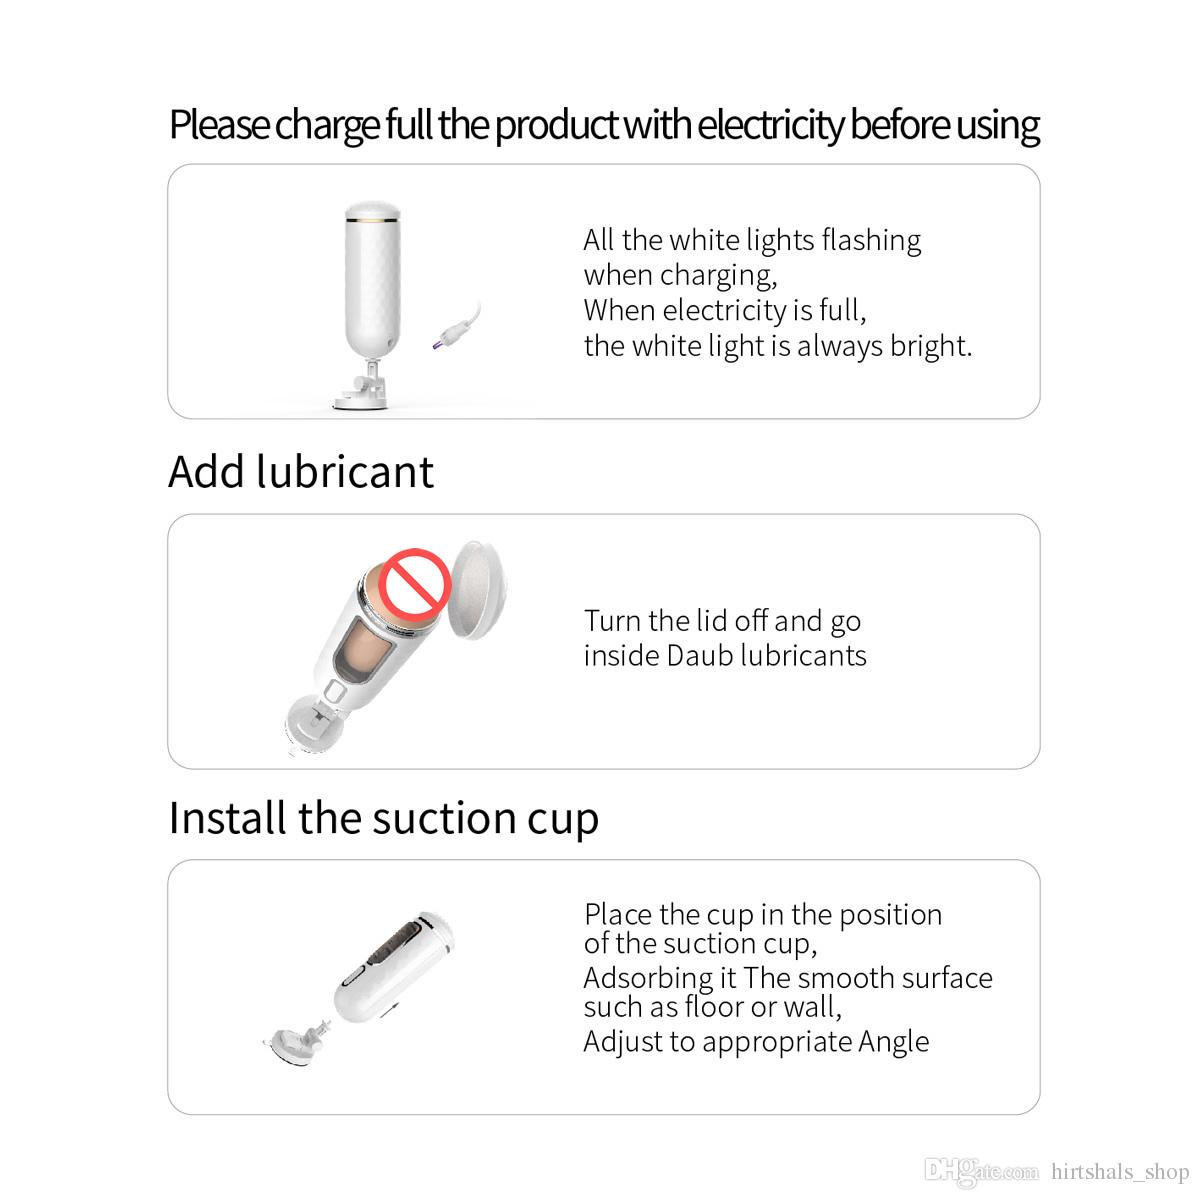 7-frequency variable frequency Male Masturbator Cup USB Rechargeable Masturbation Sex Products Adult Sex Toys for Man